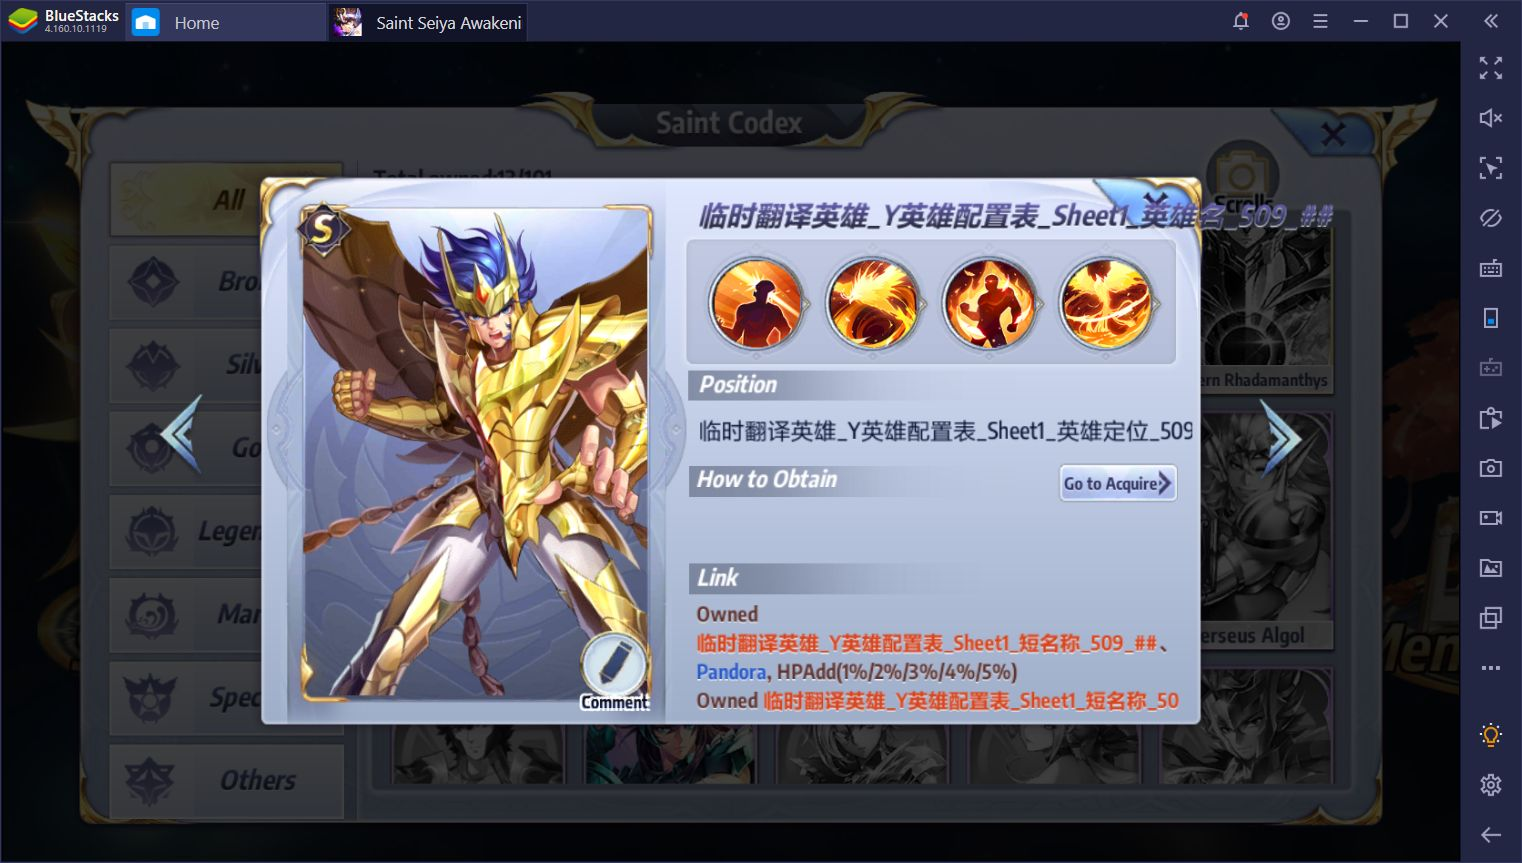 Saint Seiya Awakening on PC- How to Summon and Unleash the Power of Divine Cloth Phoenix Ikki